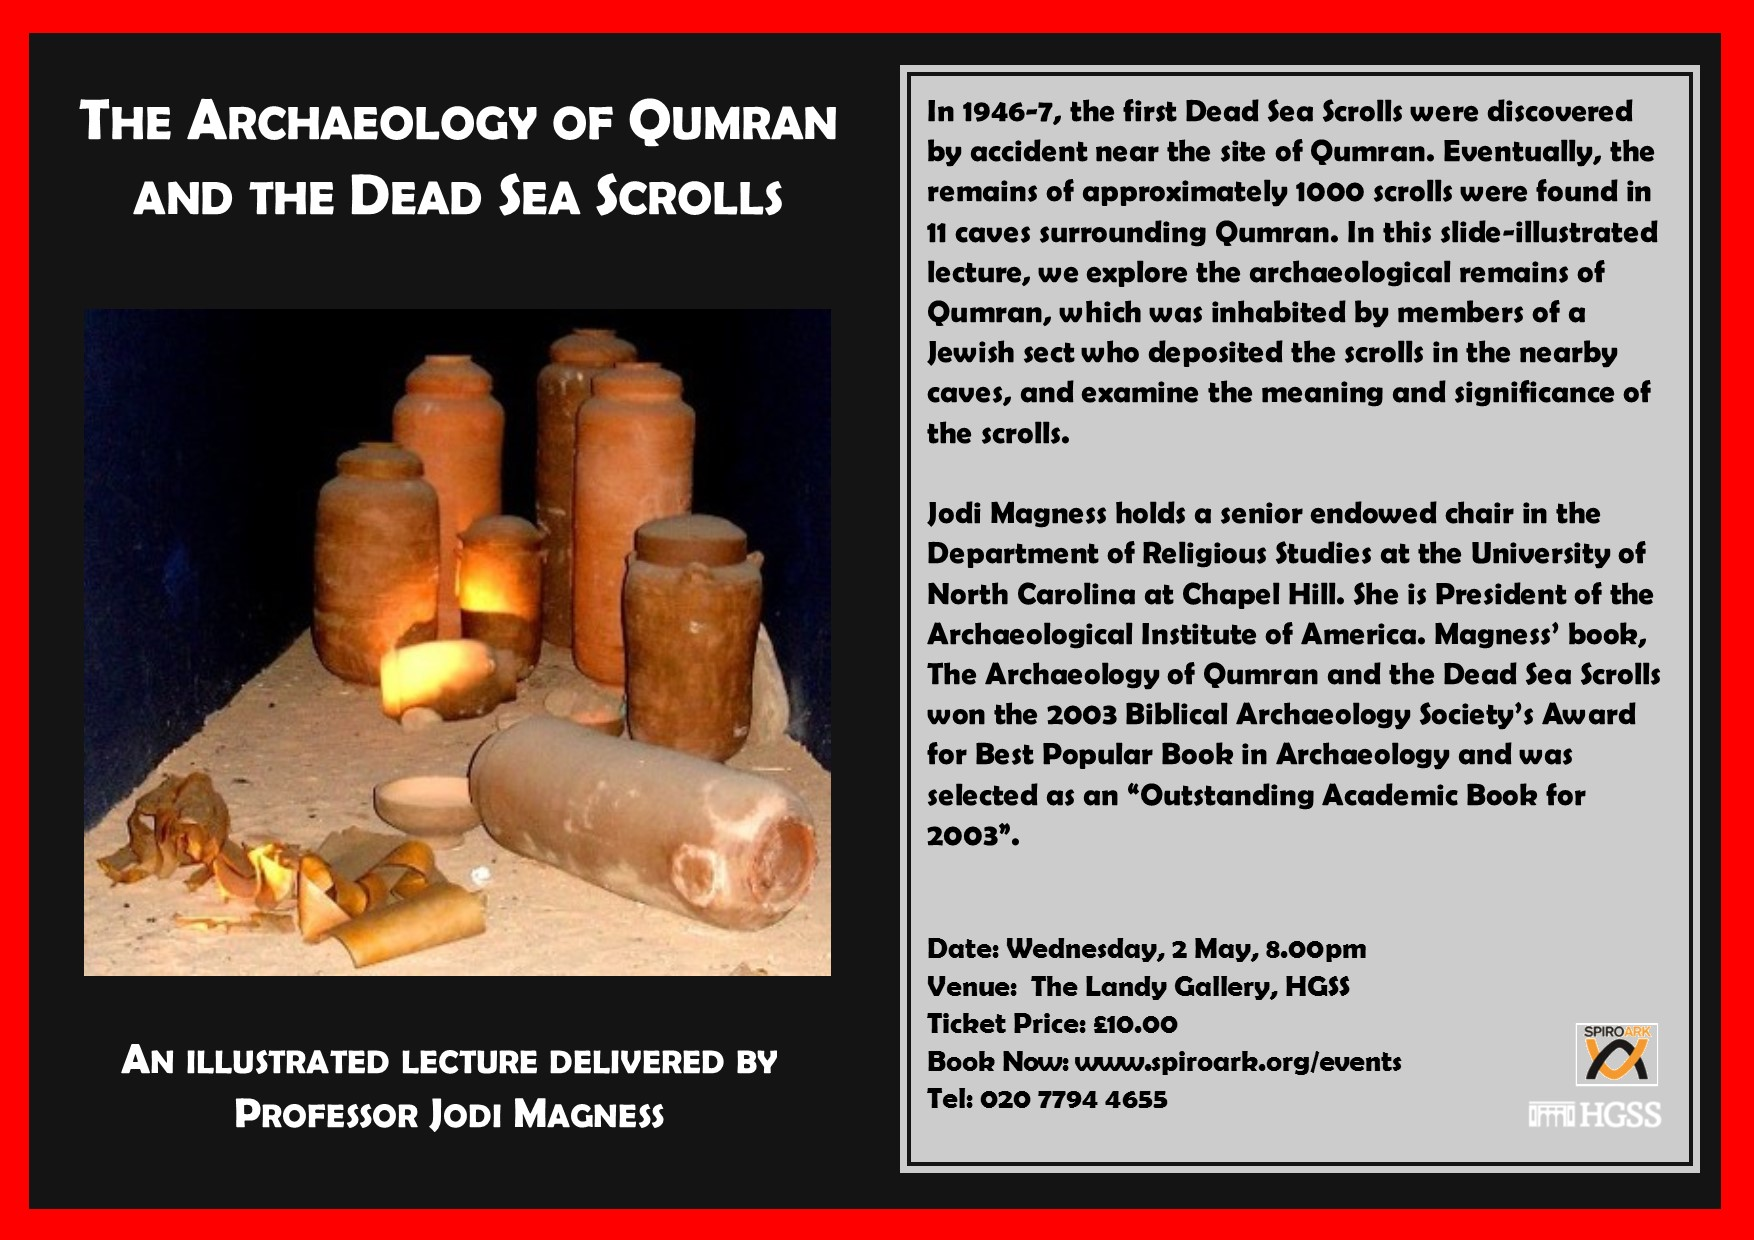 Spiro Ark - The archaeology of Qumran and the dead sea scrolls @ The Landy Gallery